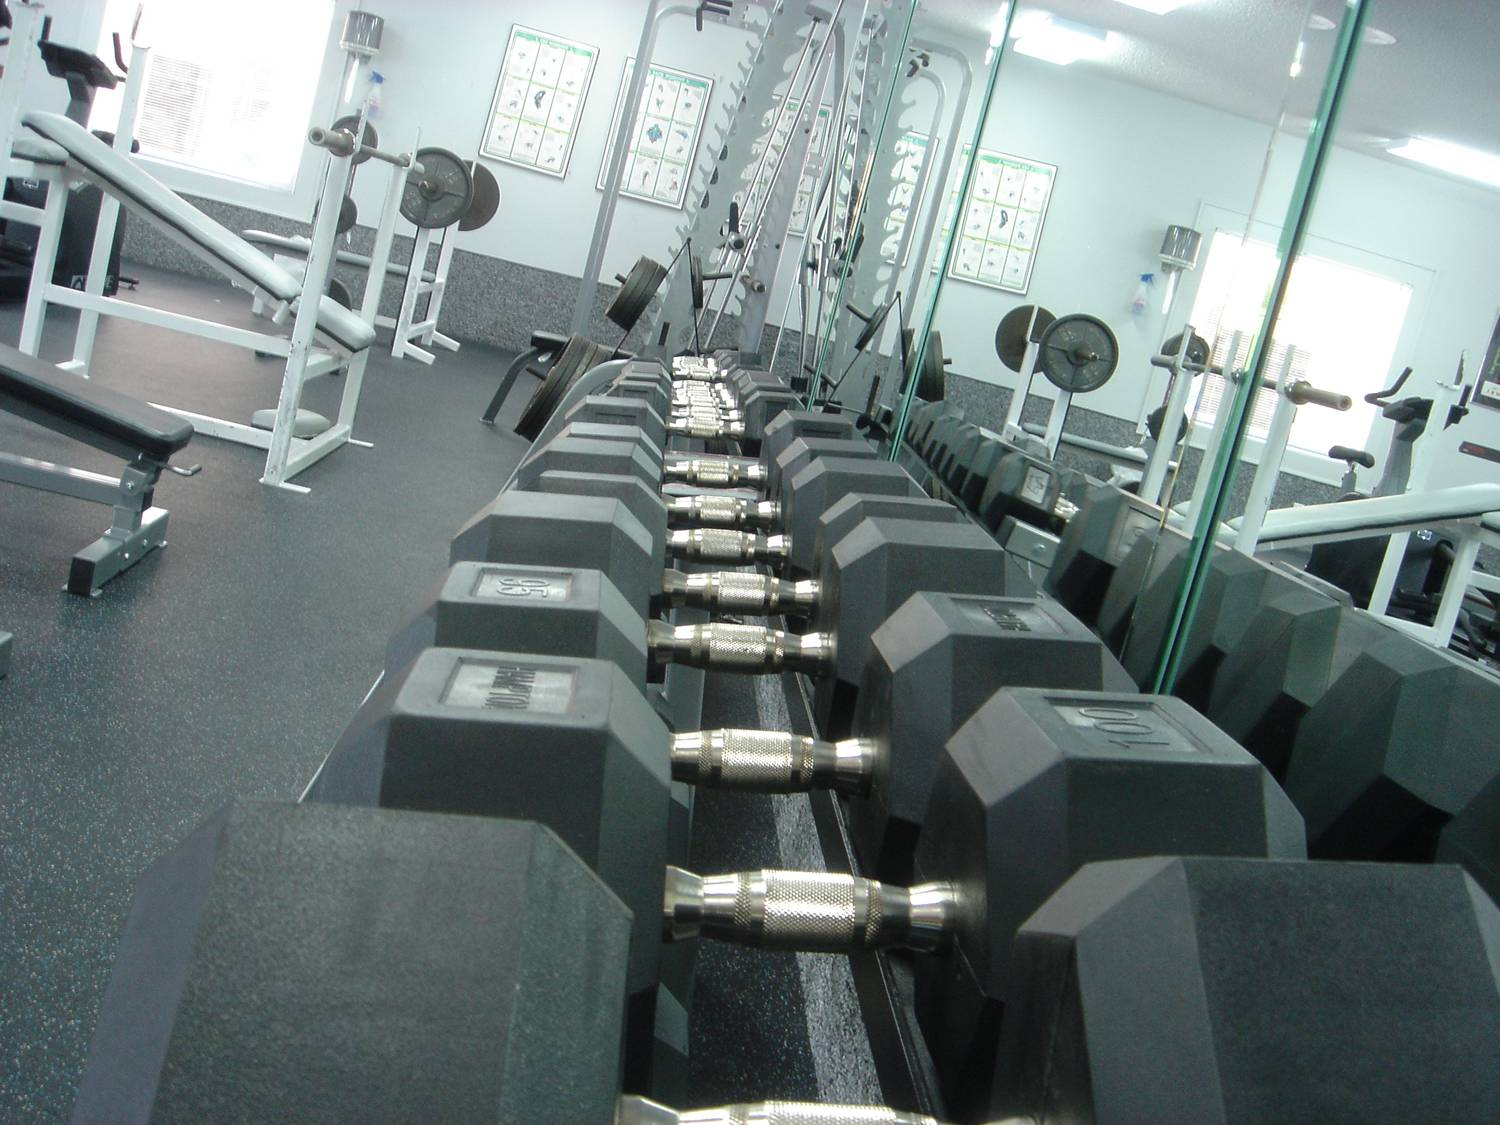 Work Outs are a Breeze at Plantation Resort while on Vacation in Myrtle Beach!